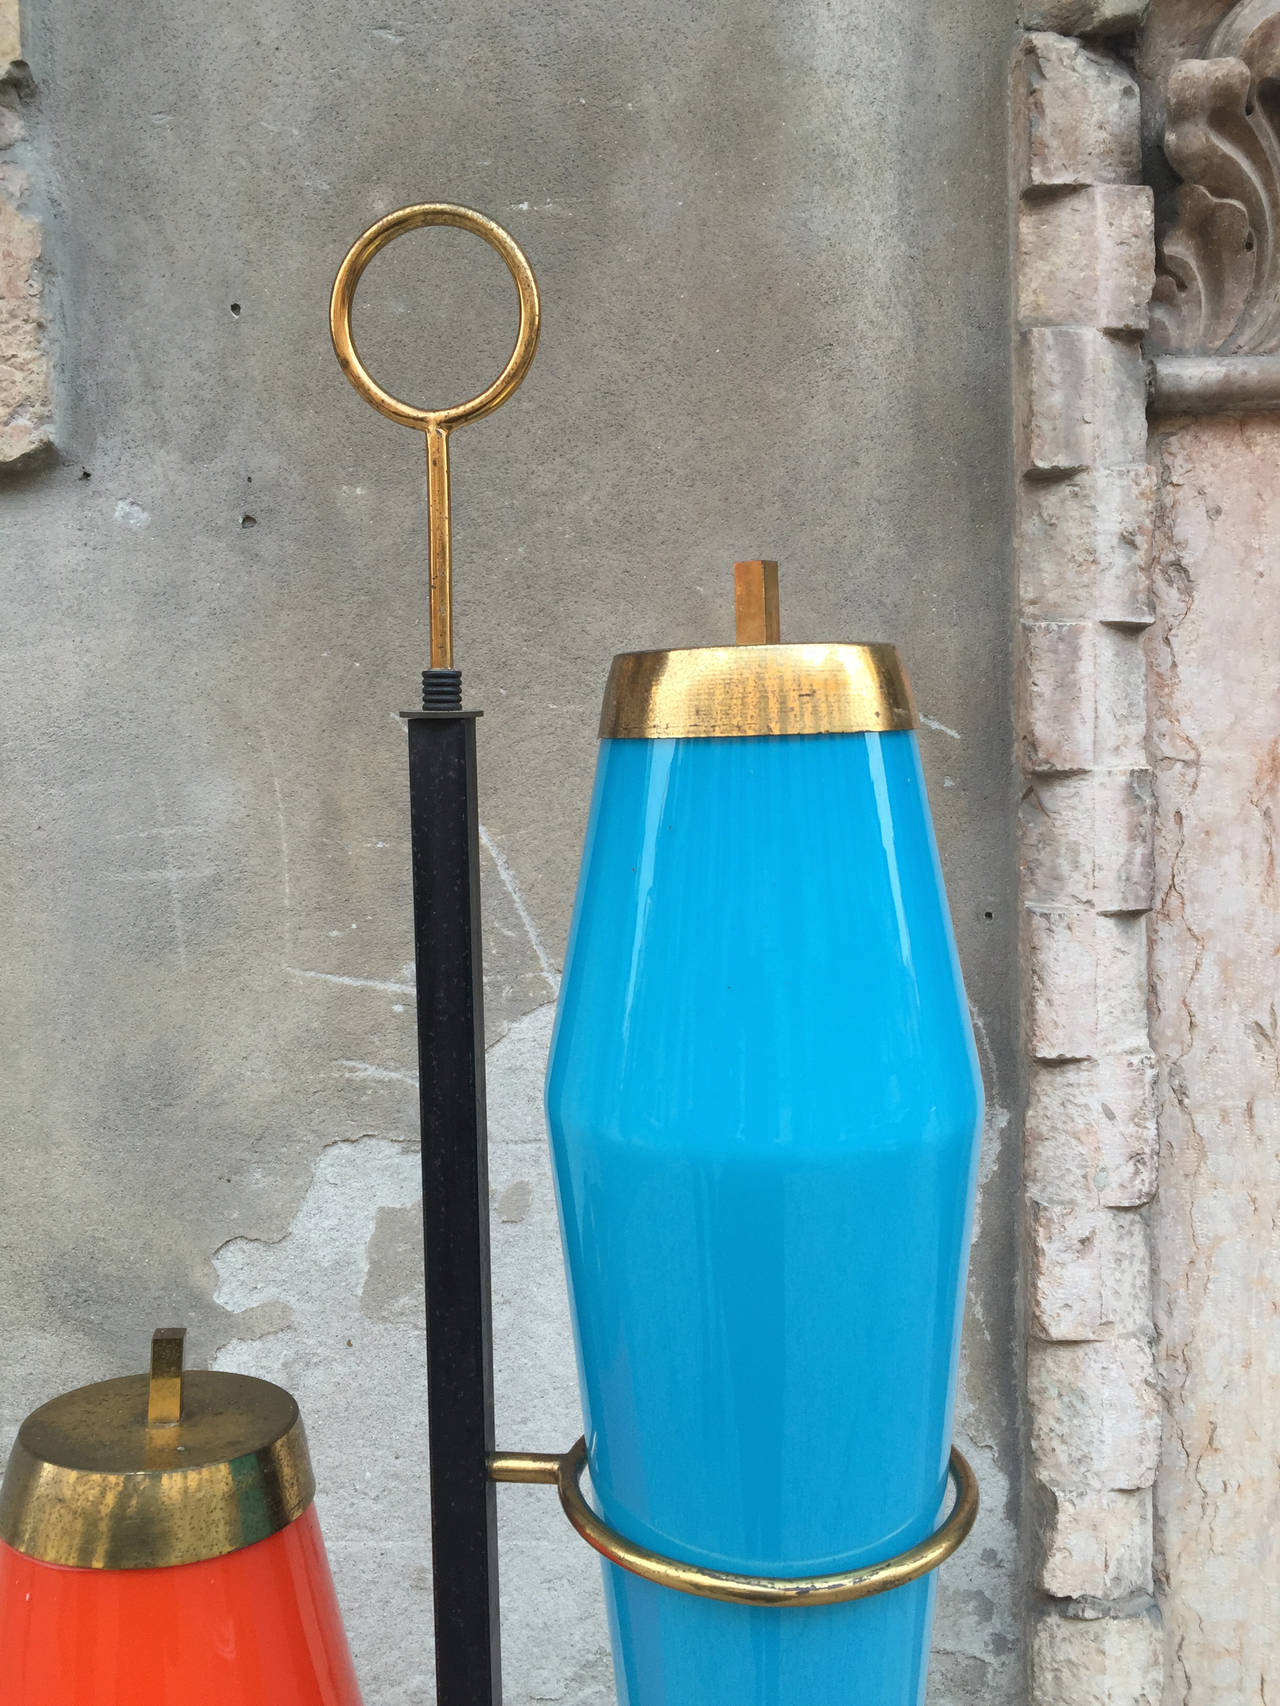 Floor lamp, design Vistosi, 1950, metal painted black and brass, colored glass and by the company based material Vistosi Venice. in perfect condition.